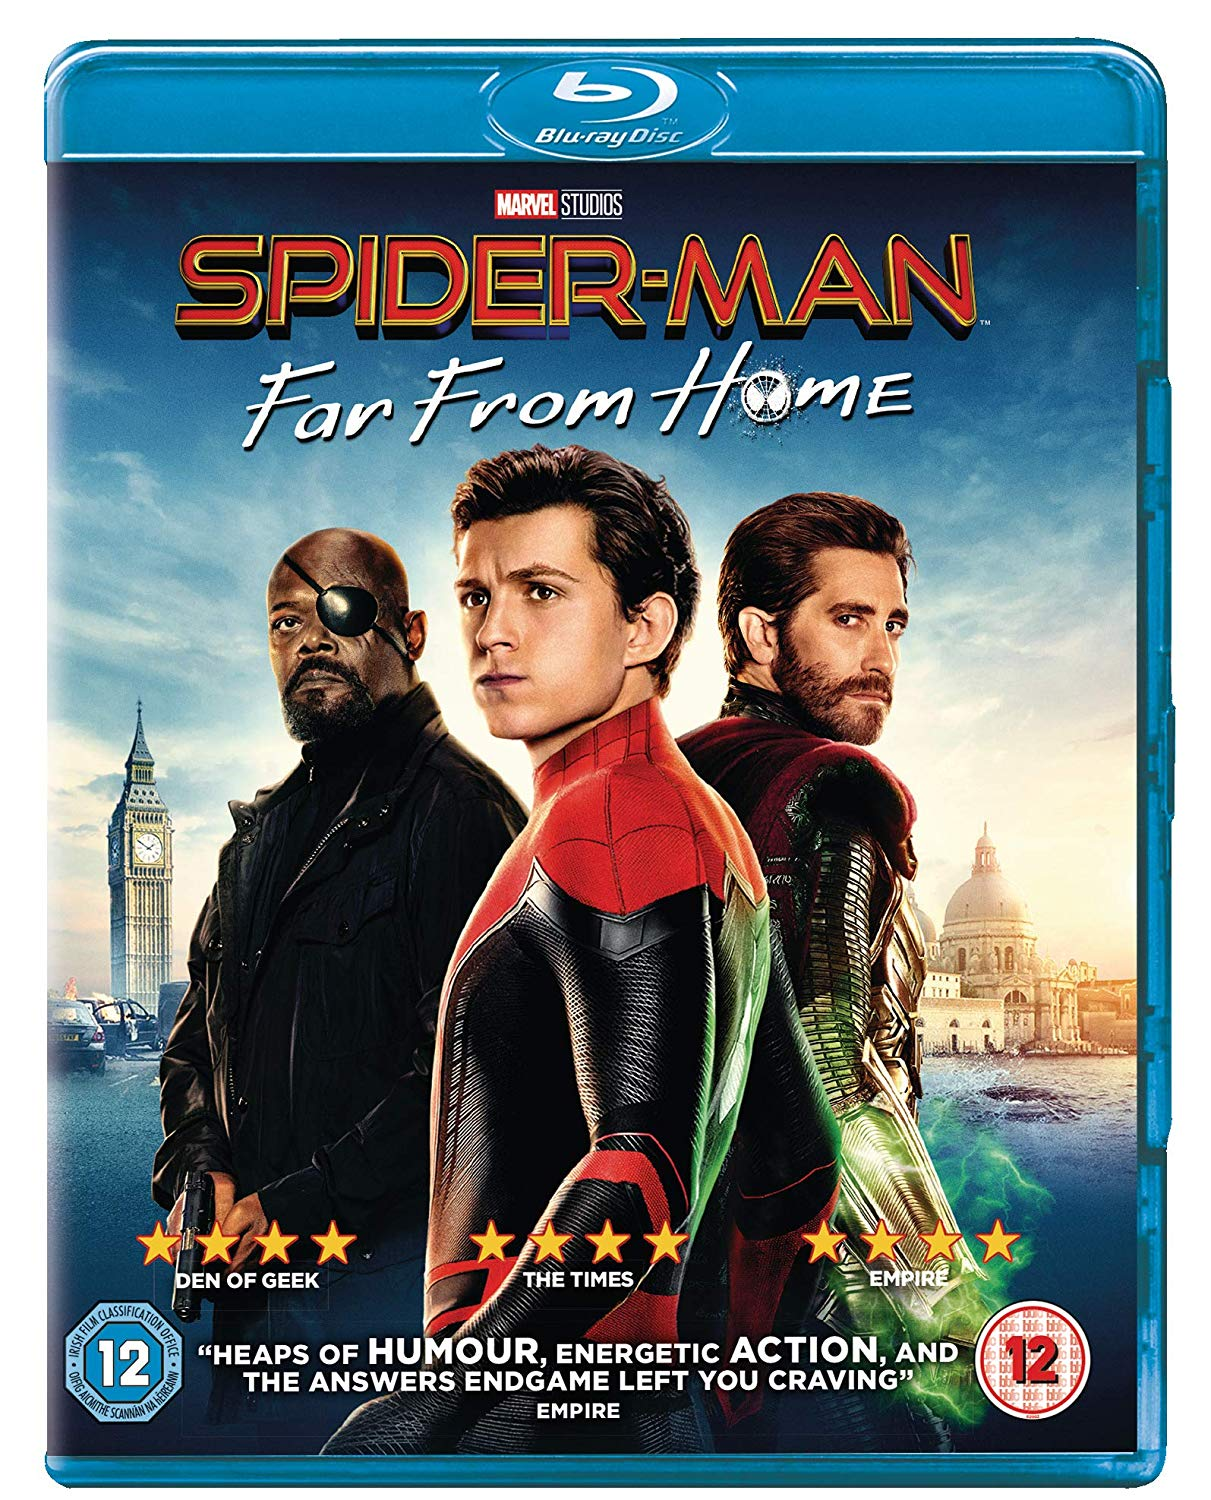 spider-man: far from home comp